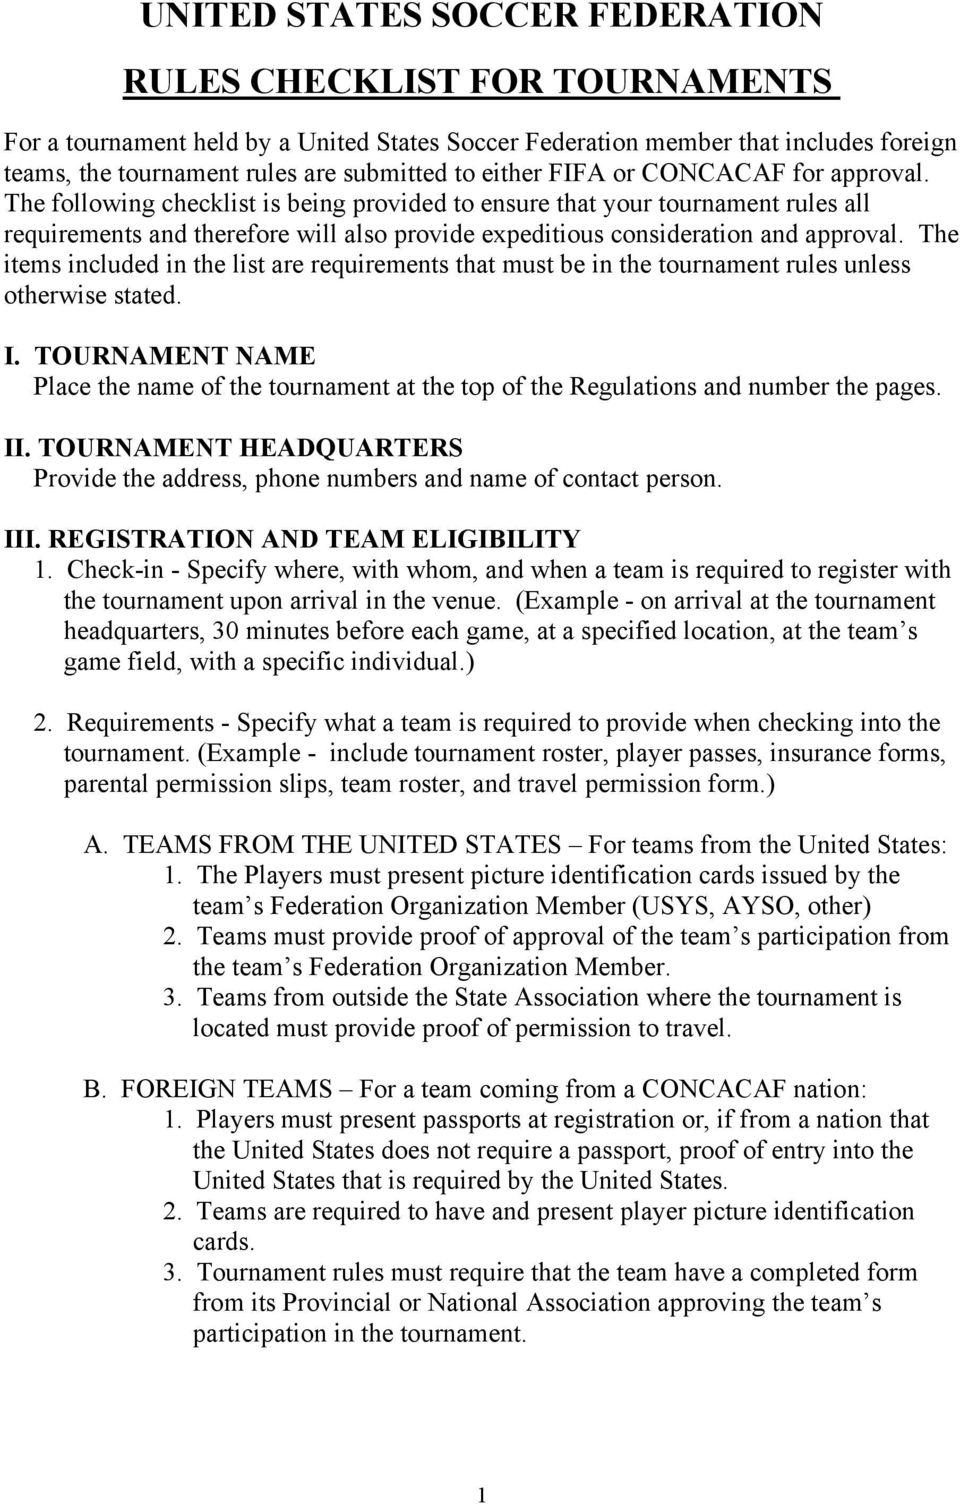 The following checklist is being provided to ensure that your tournament rules all requirements and therefore will also provide expeditious consideration and approval.